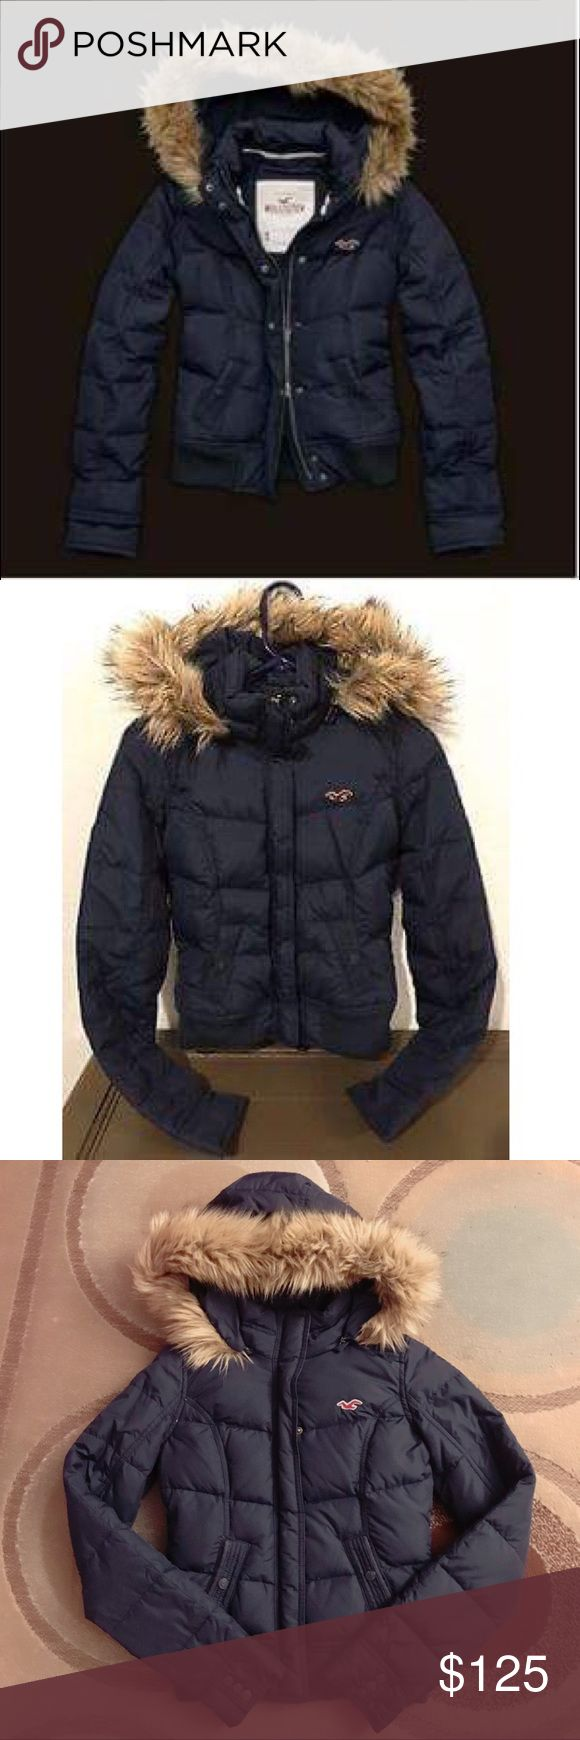 Hollister Parka Puffer Jacket Preloved. Excellent condition. No tears/rips/stains/holes or anything hidden. Hollister signature parka puffer. Navy. Size XS. Quilted. Removable faux fur hood. Comes from a smoke-free home.No trade/lowest/pp. Final sale. Hollister Jackets & Coats Puffers